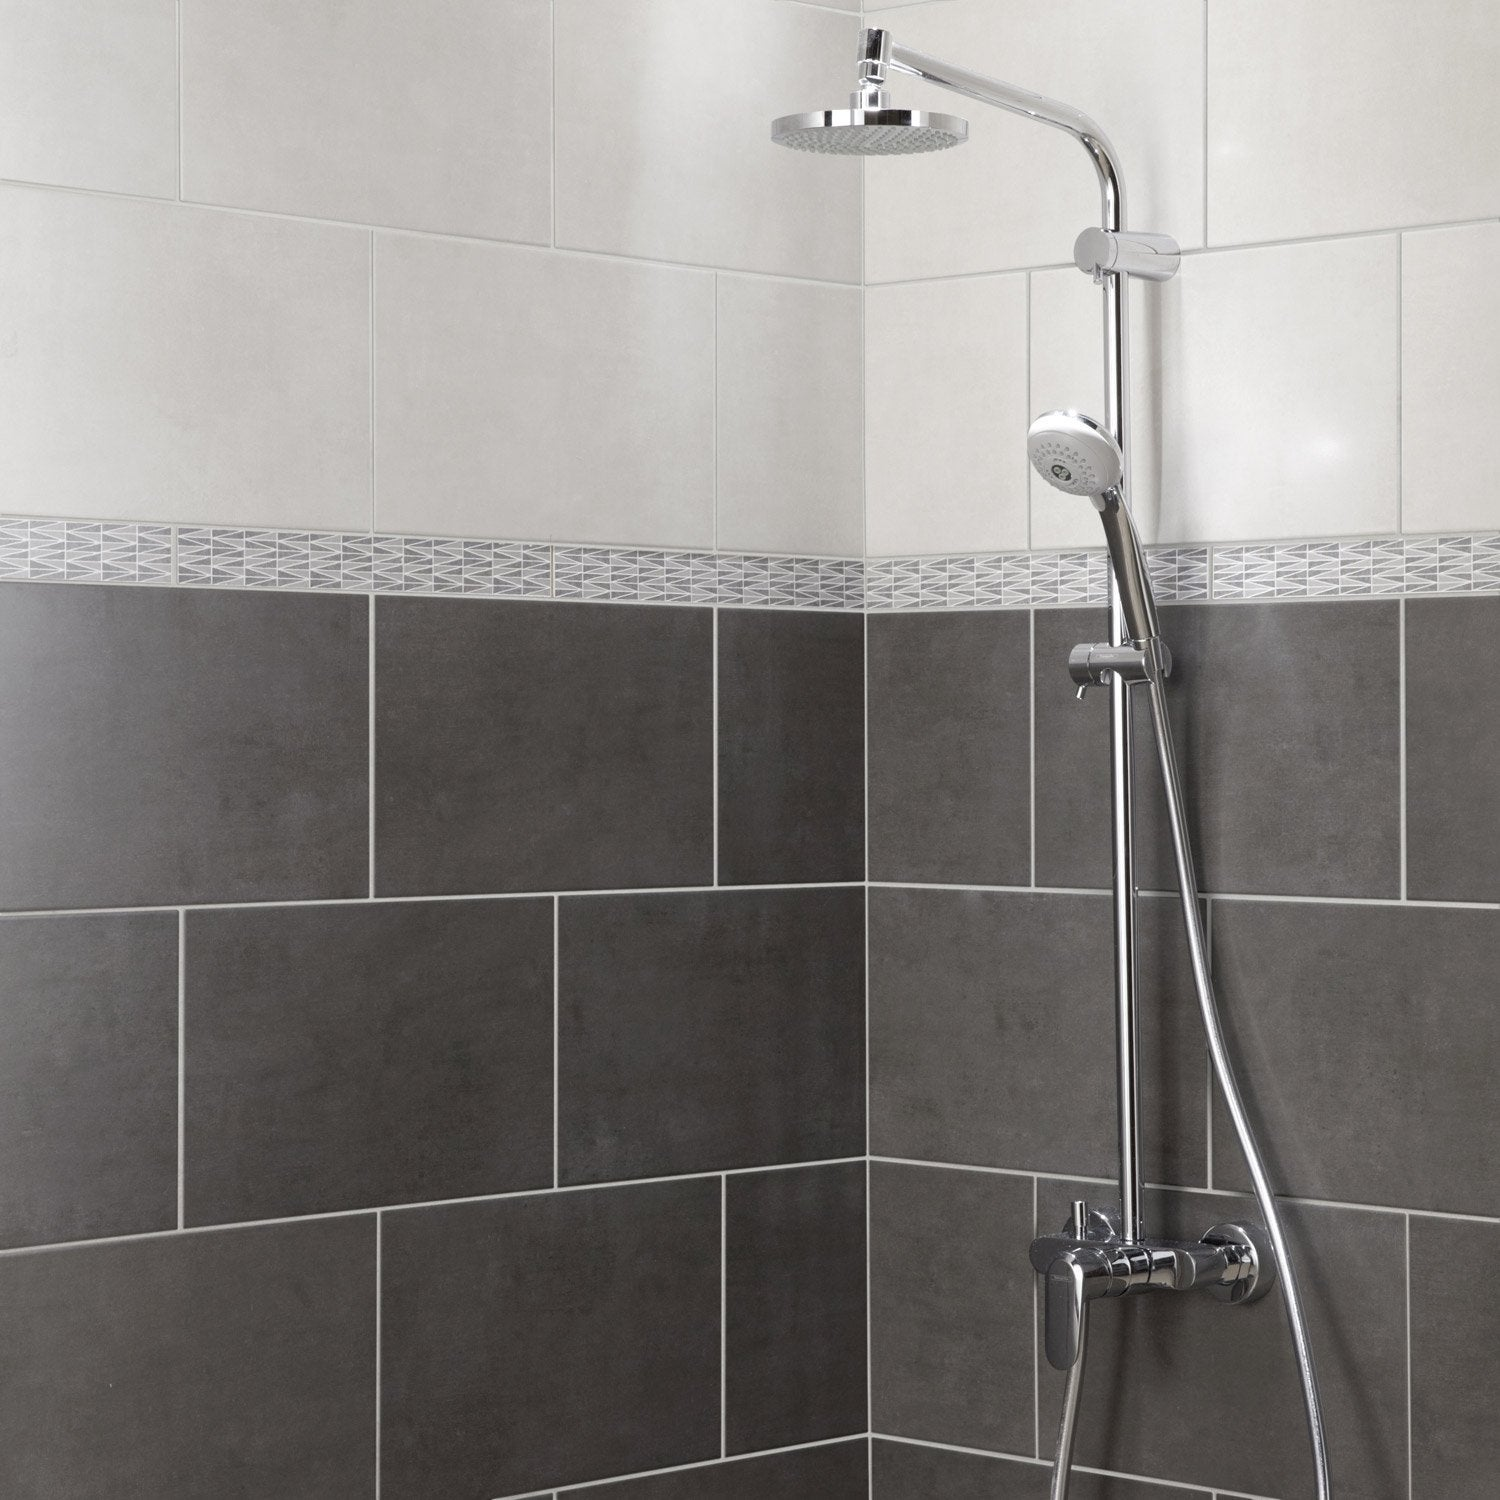 Fa ence mur anthracite smart x cm leroy merlin for Faience mur salle de bain